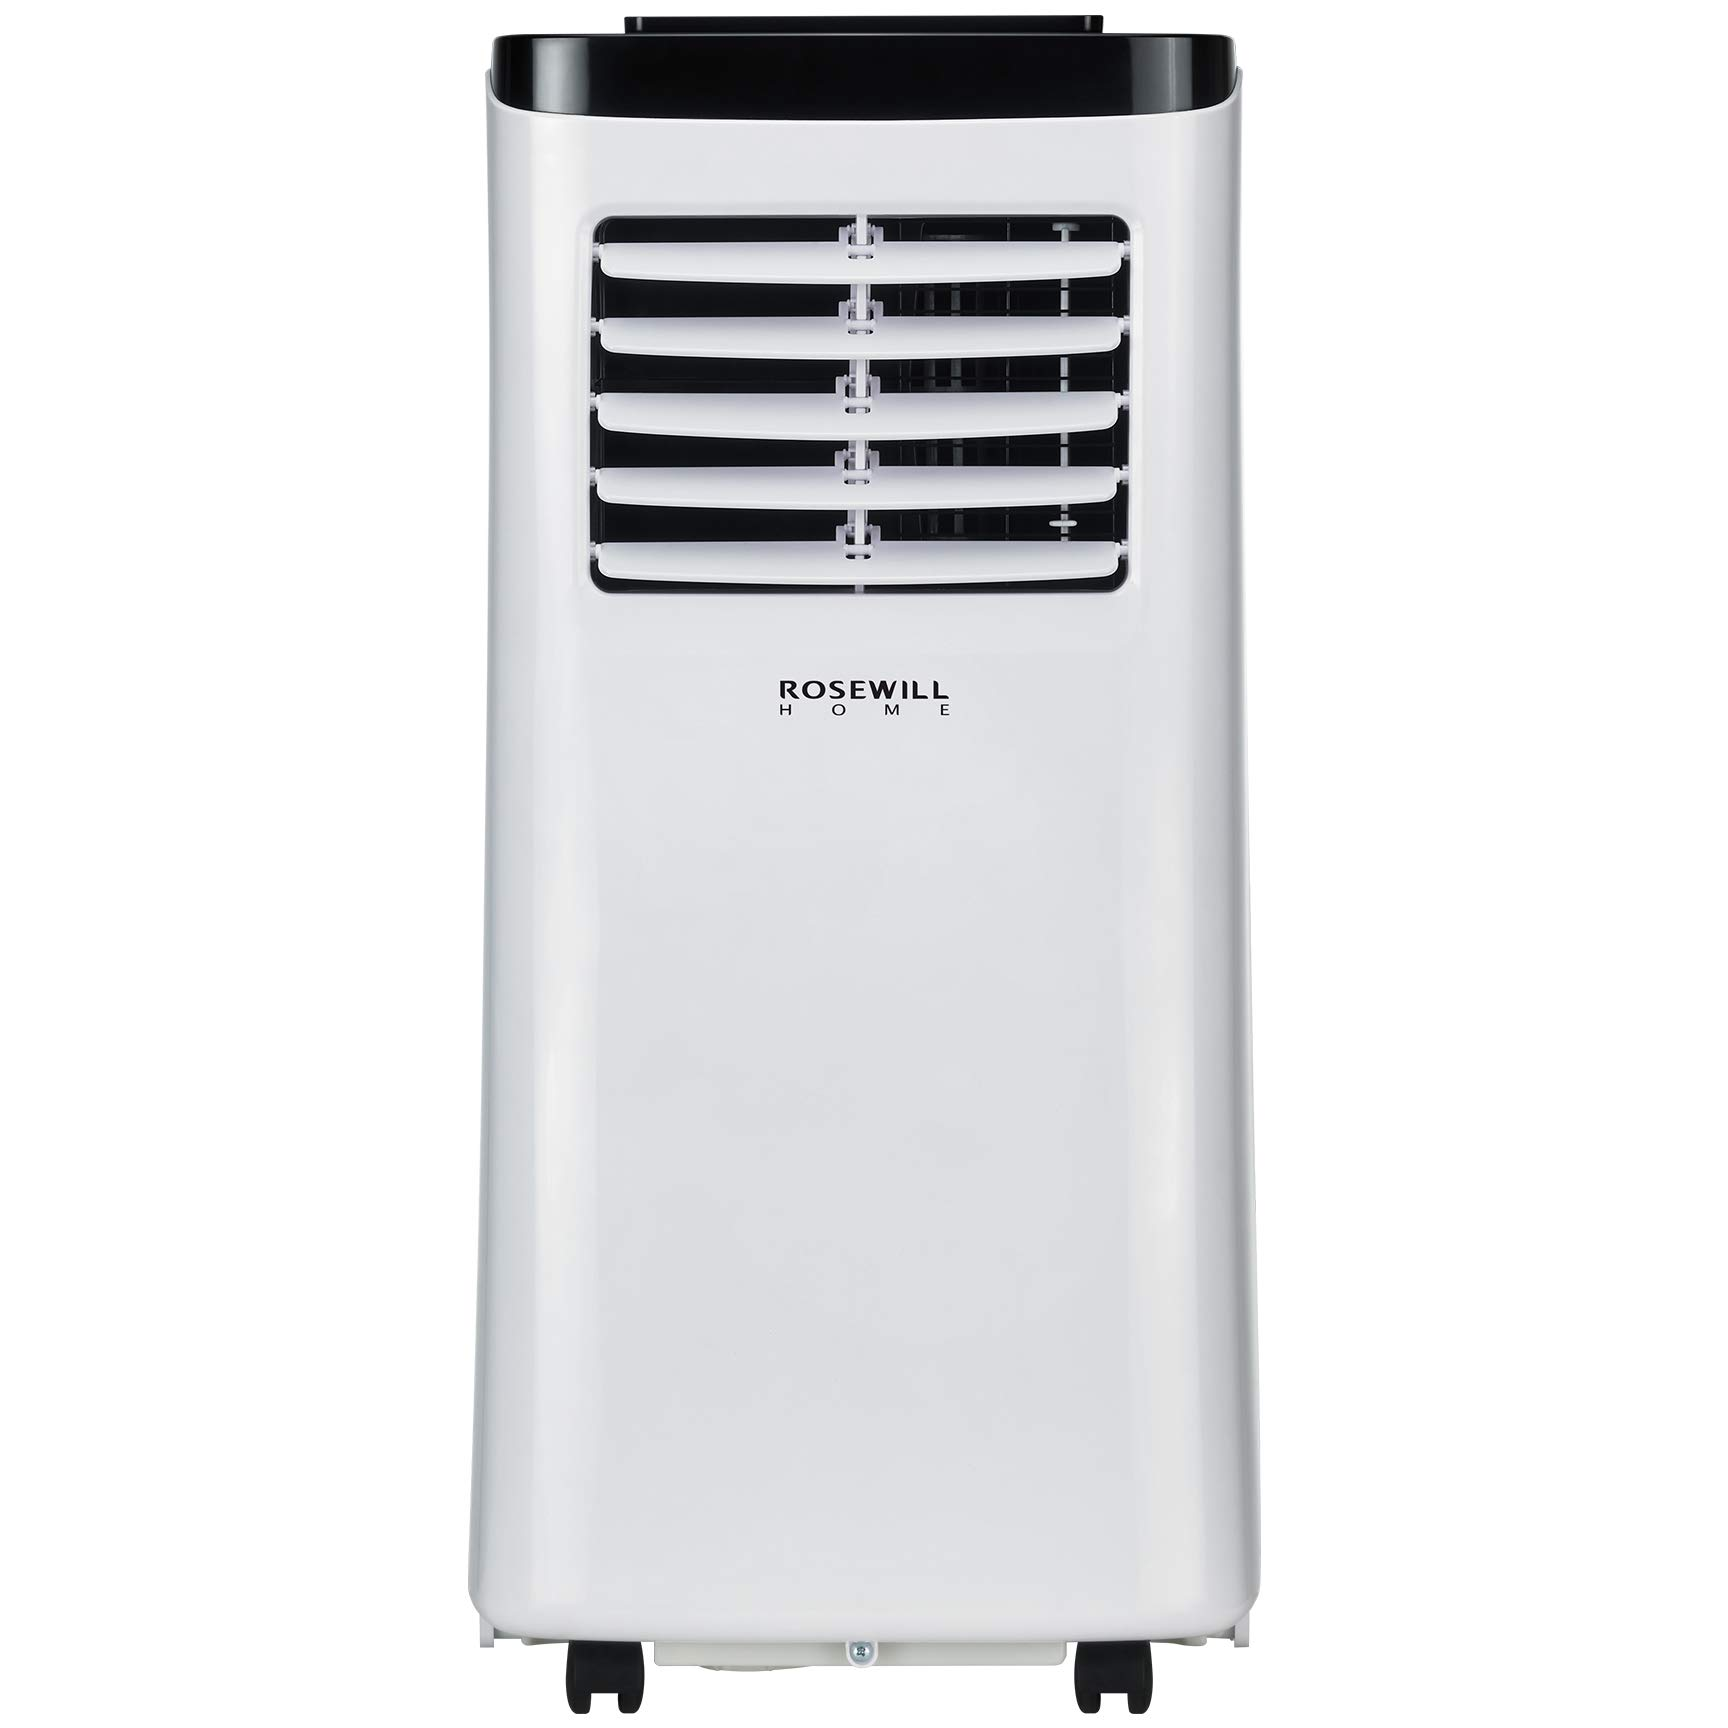 Rosewill Conditioner Dehumidifier Evaporation RHPA 18001